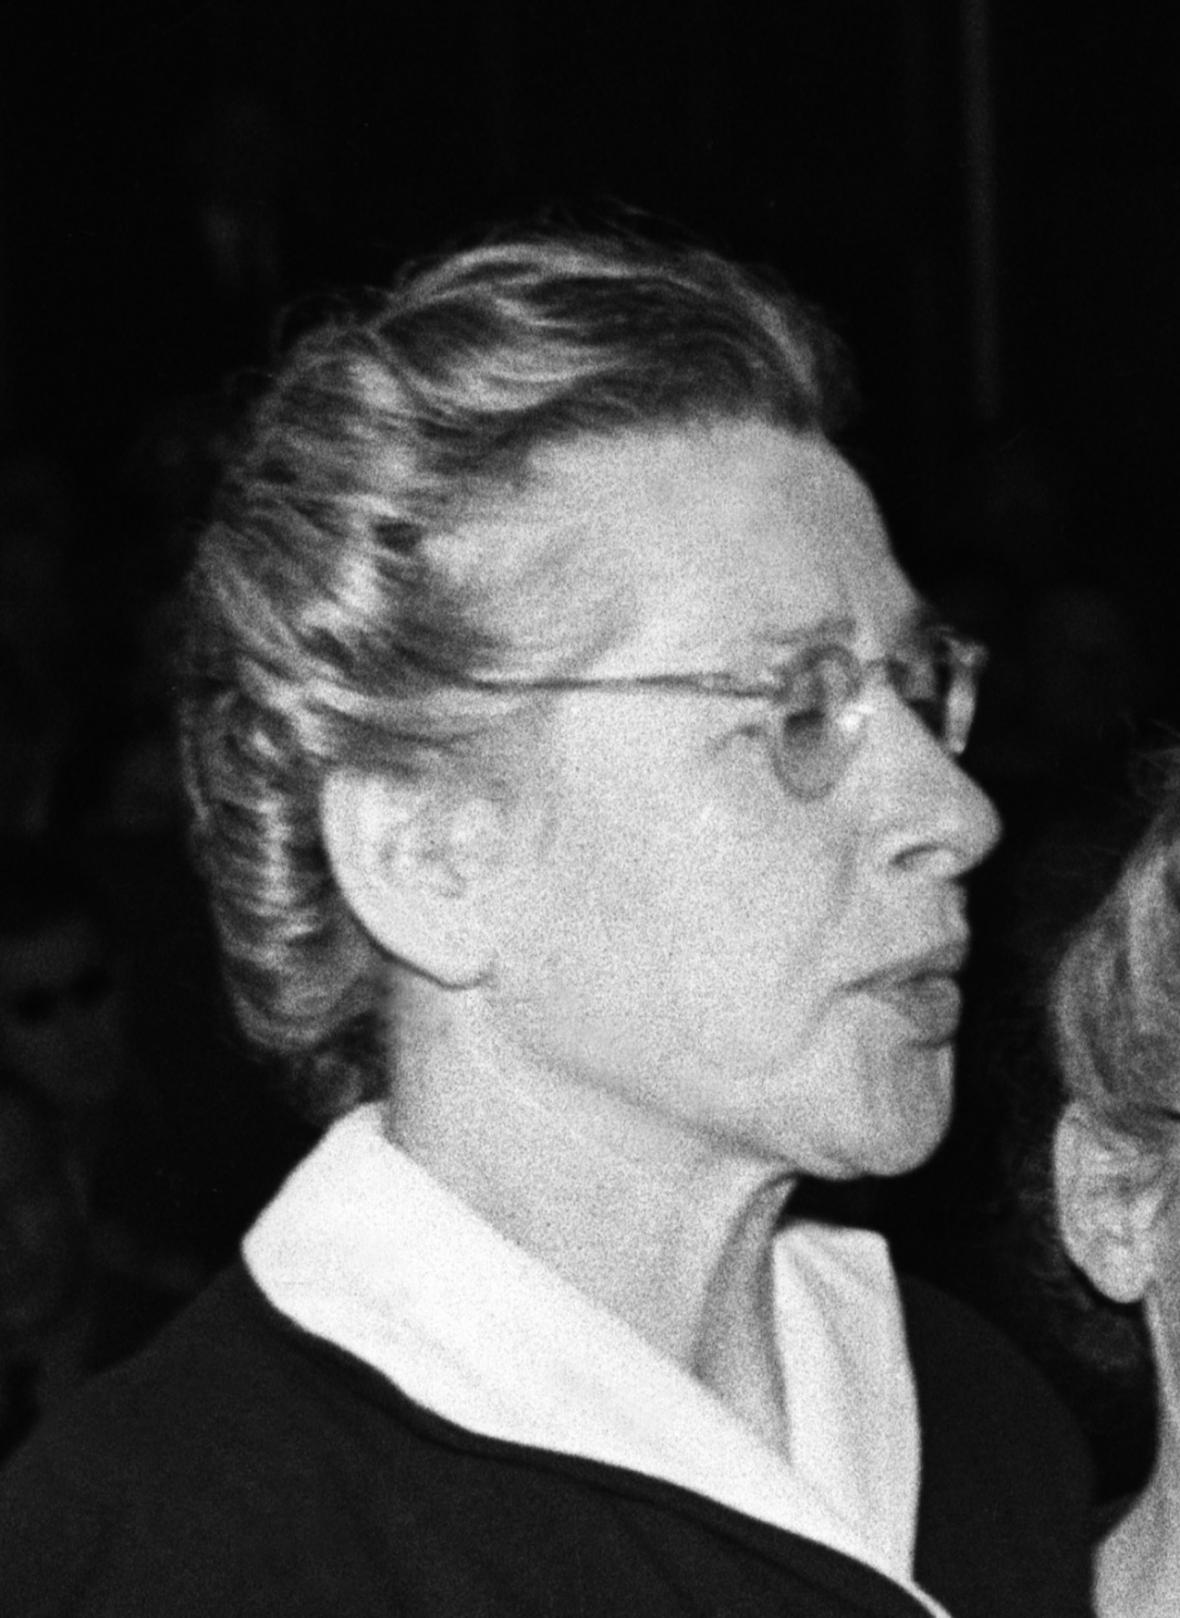 Milada Horáková - 4. 6. 1950